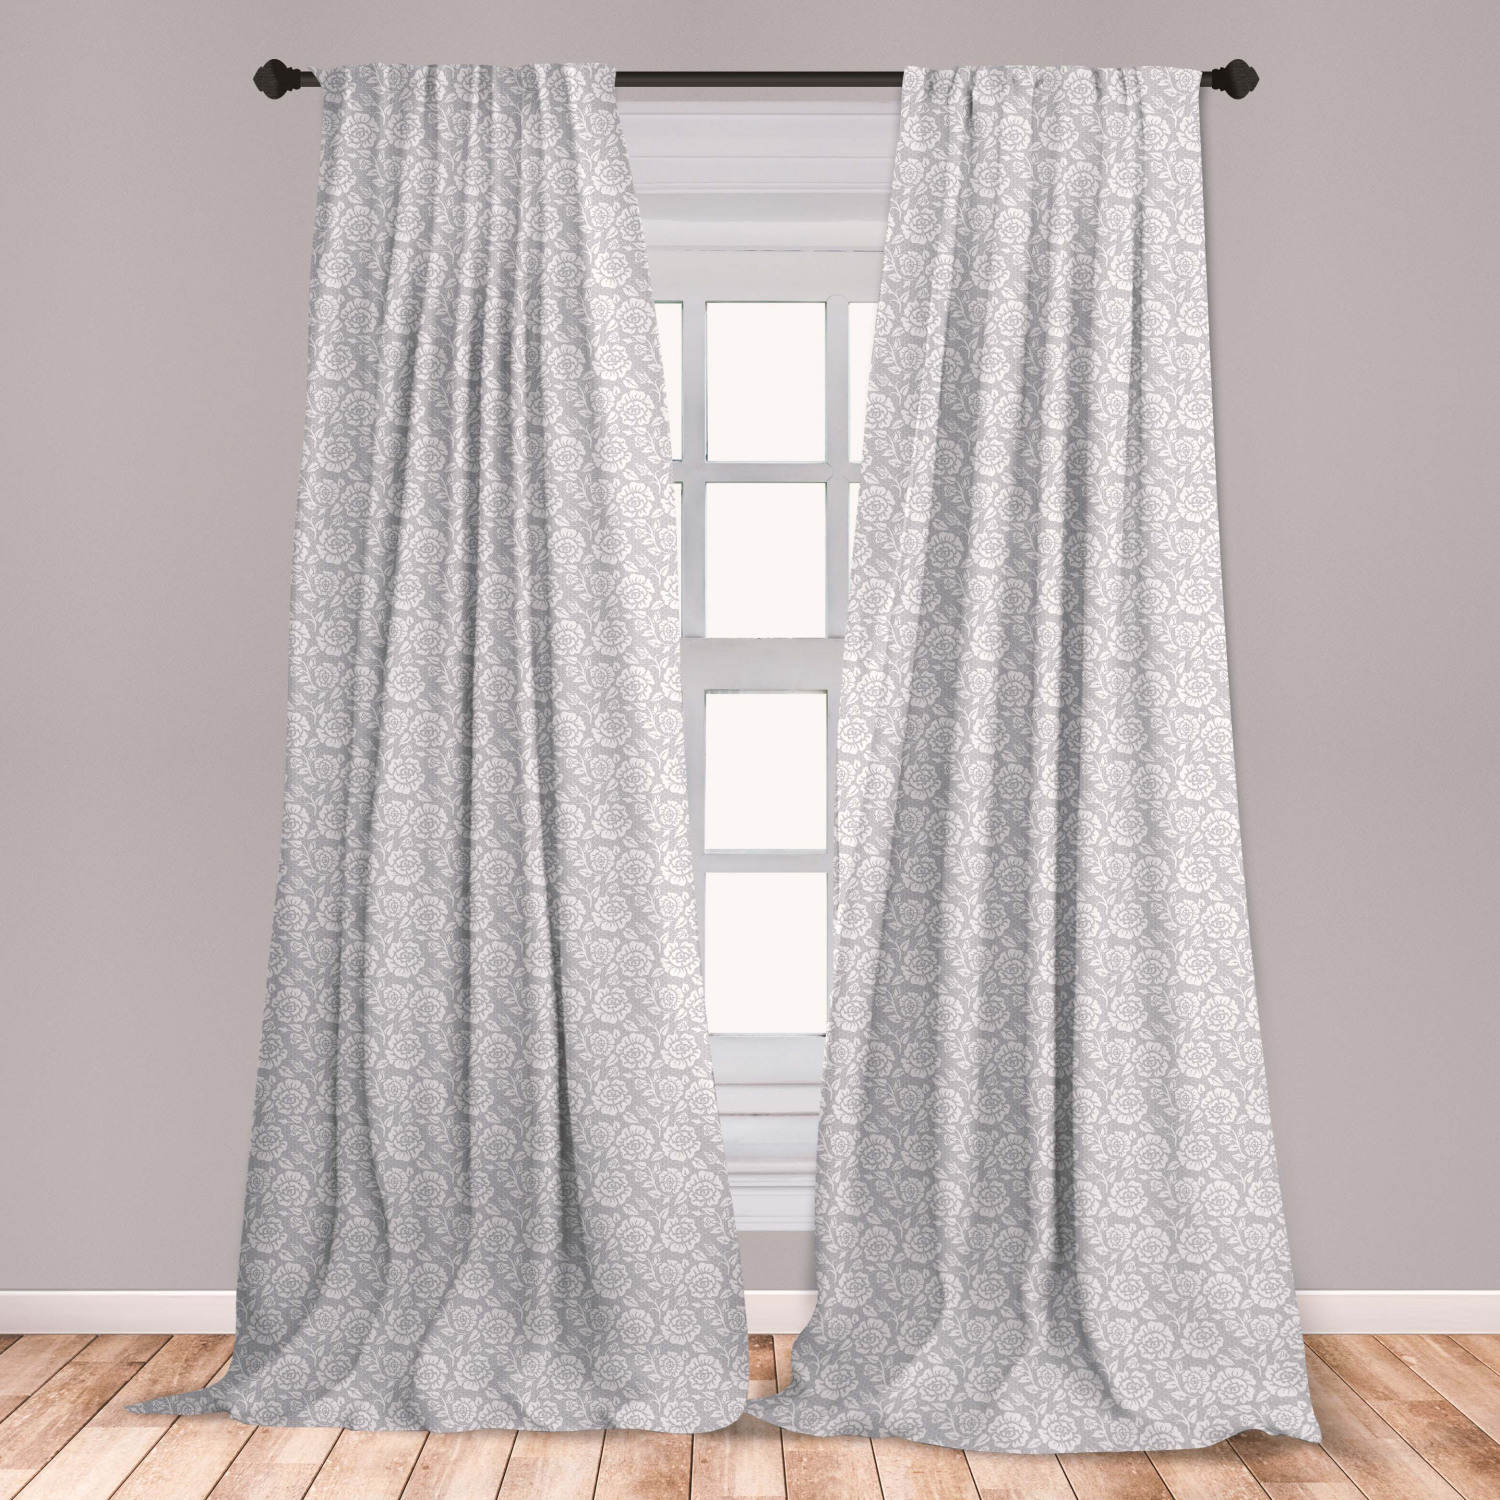 Grey Curtains 2 Panels Set Floral Flower Buds Leaves Pattern English Country Style Victorian Lace Image Print Window Drapes For Living Room Bedroom Grey White By Ambesonne Walmart Com Walmart Com